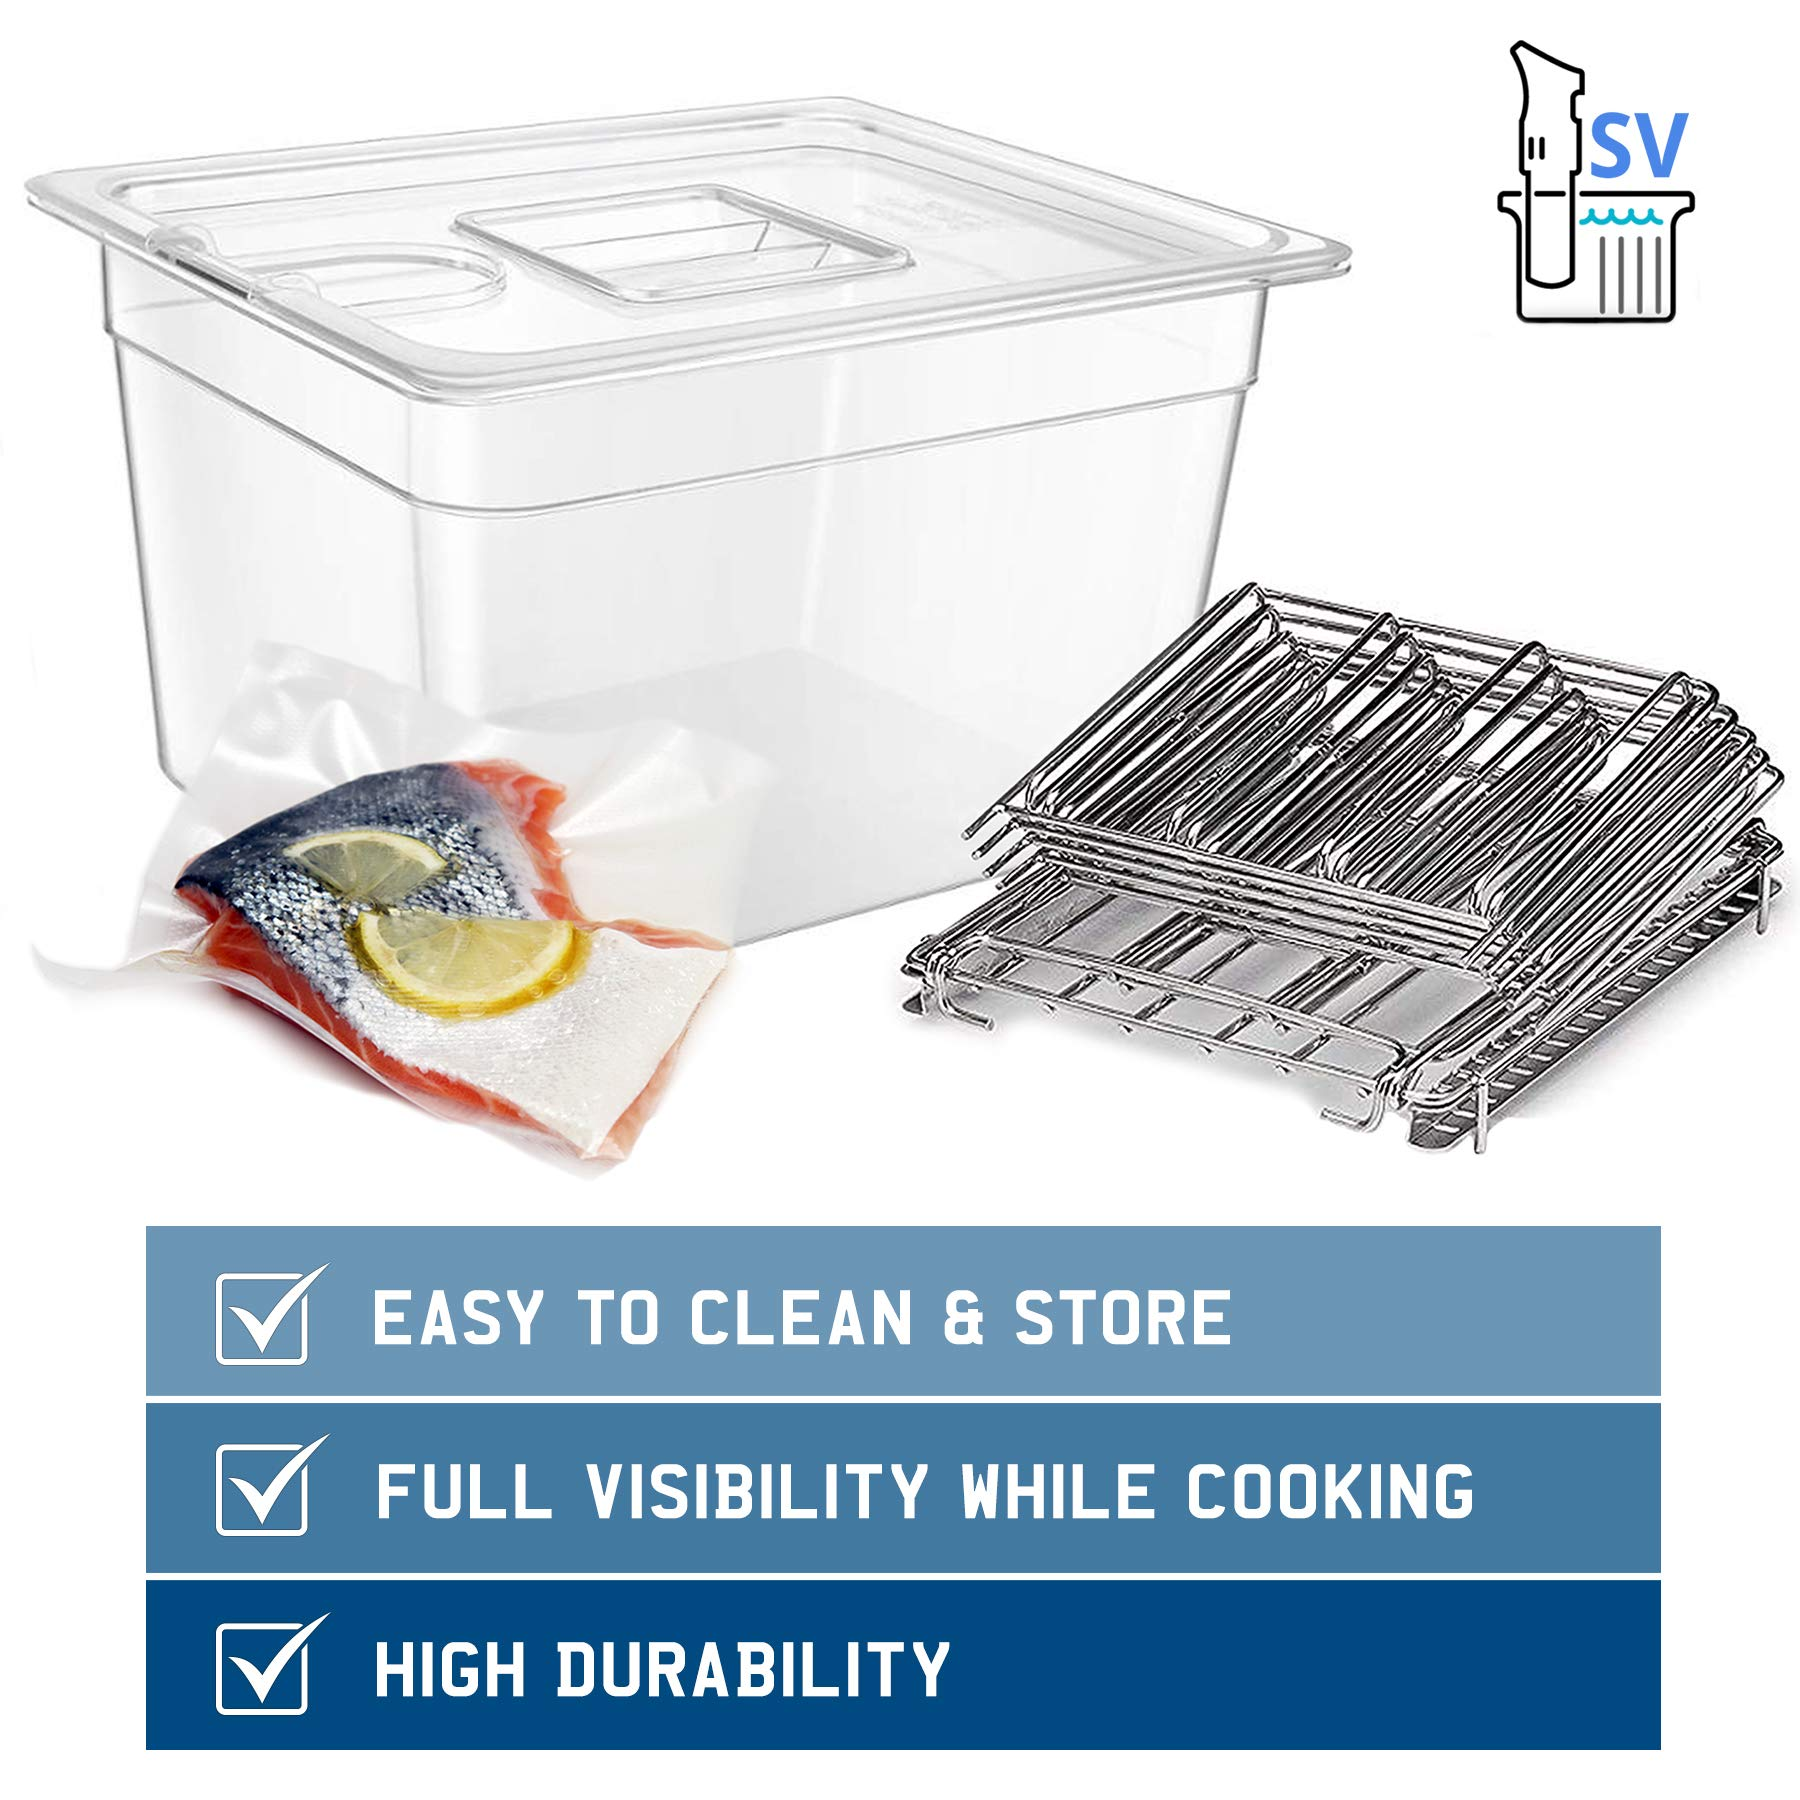 SV - Sous Vide Cooker Complete Set with Container Lid and Rack - Crystal Clear 12 Qt Container BPA Free NSF Rated - Stainless Steel Rack - Suits Anova, Nano, Joule and Most Circulators